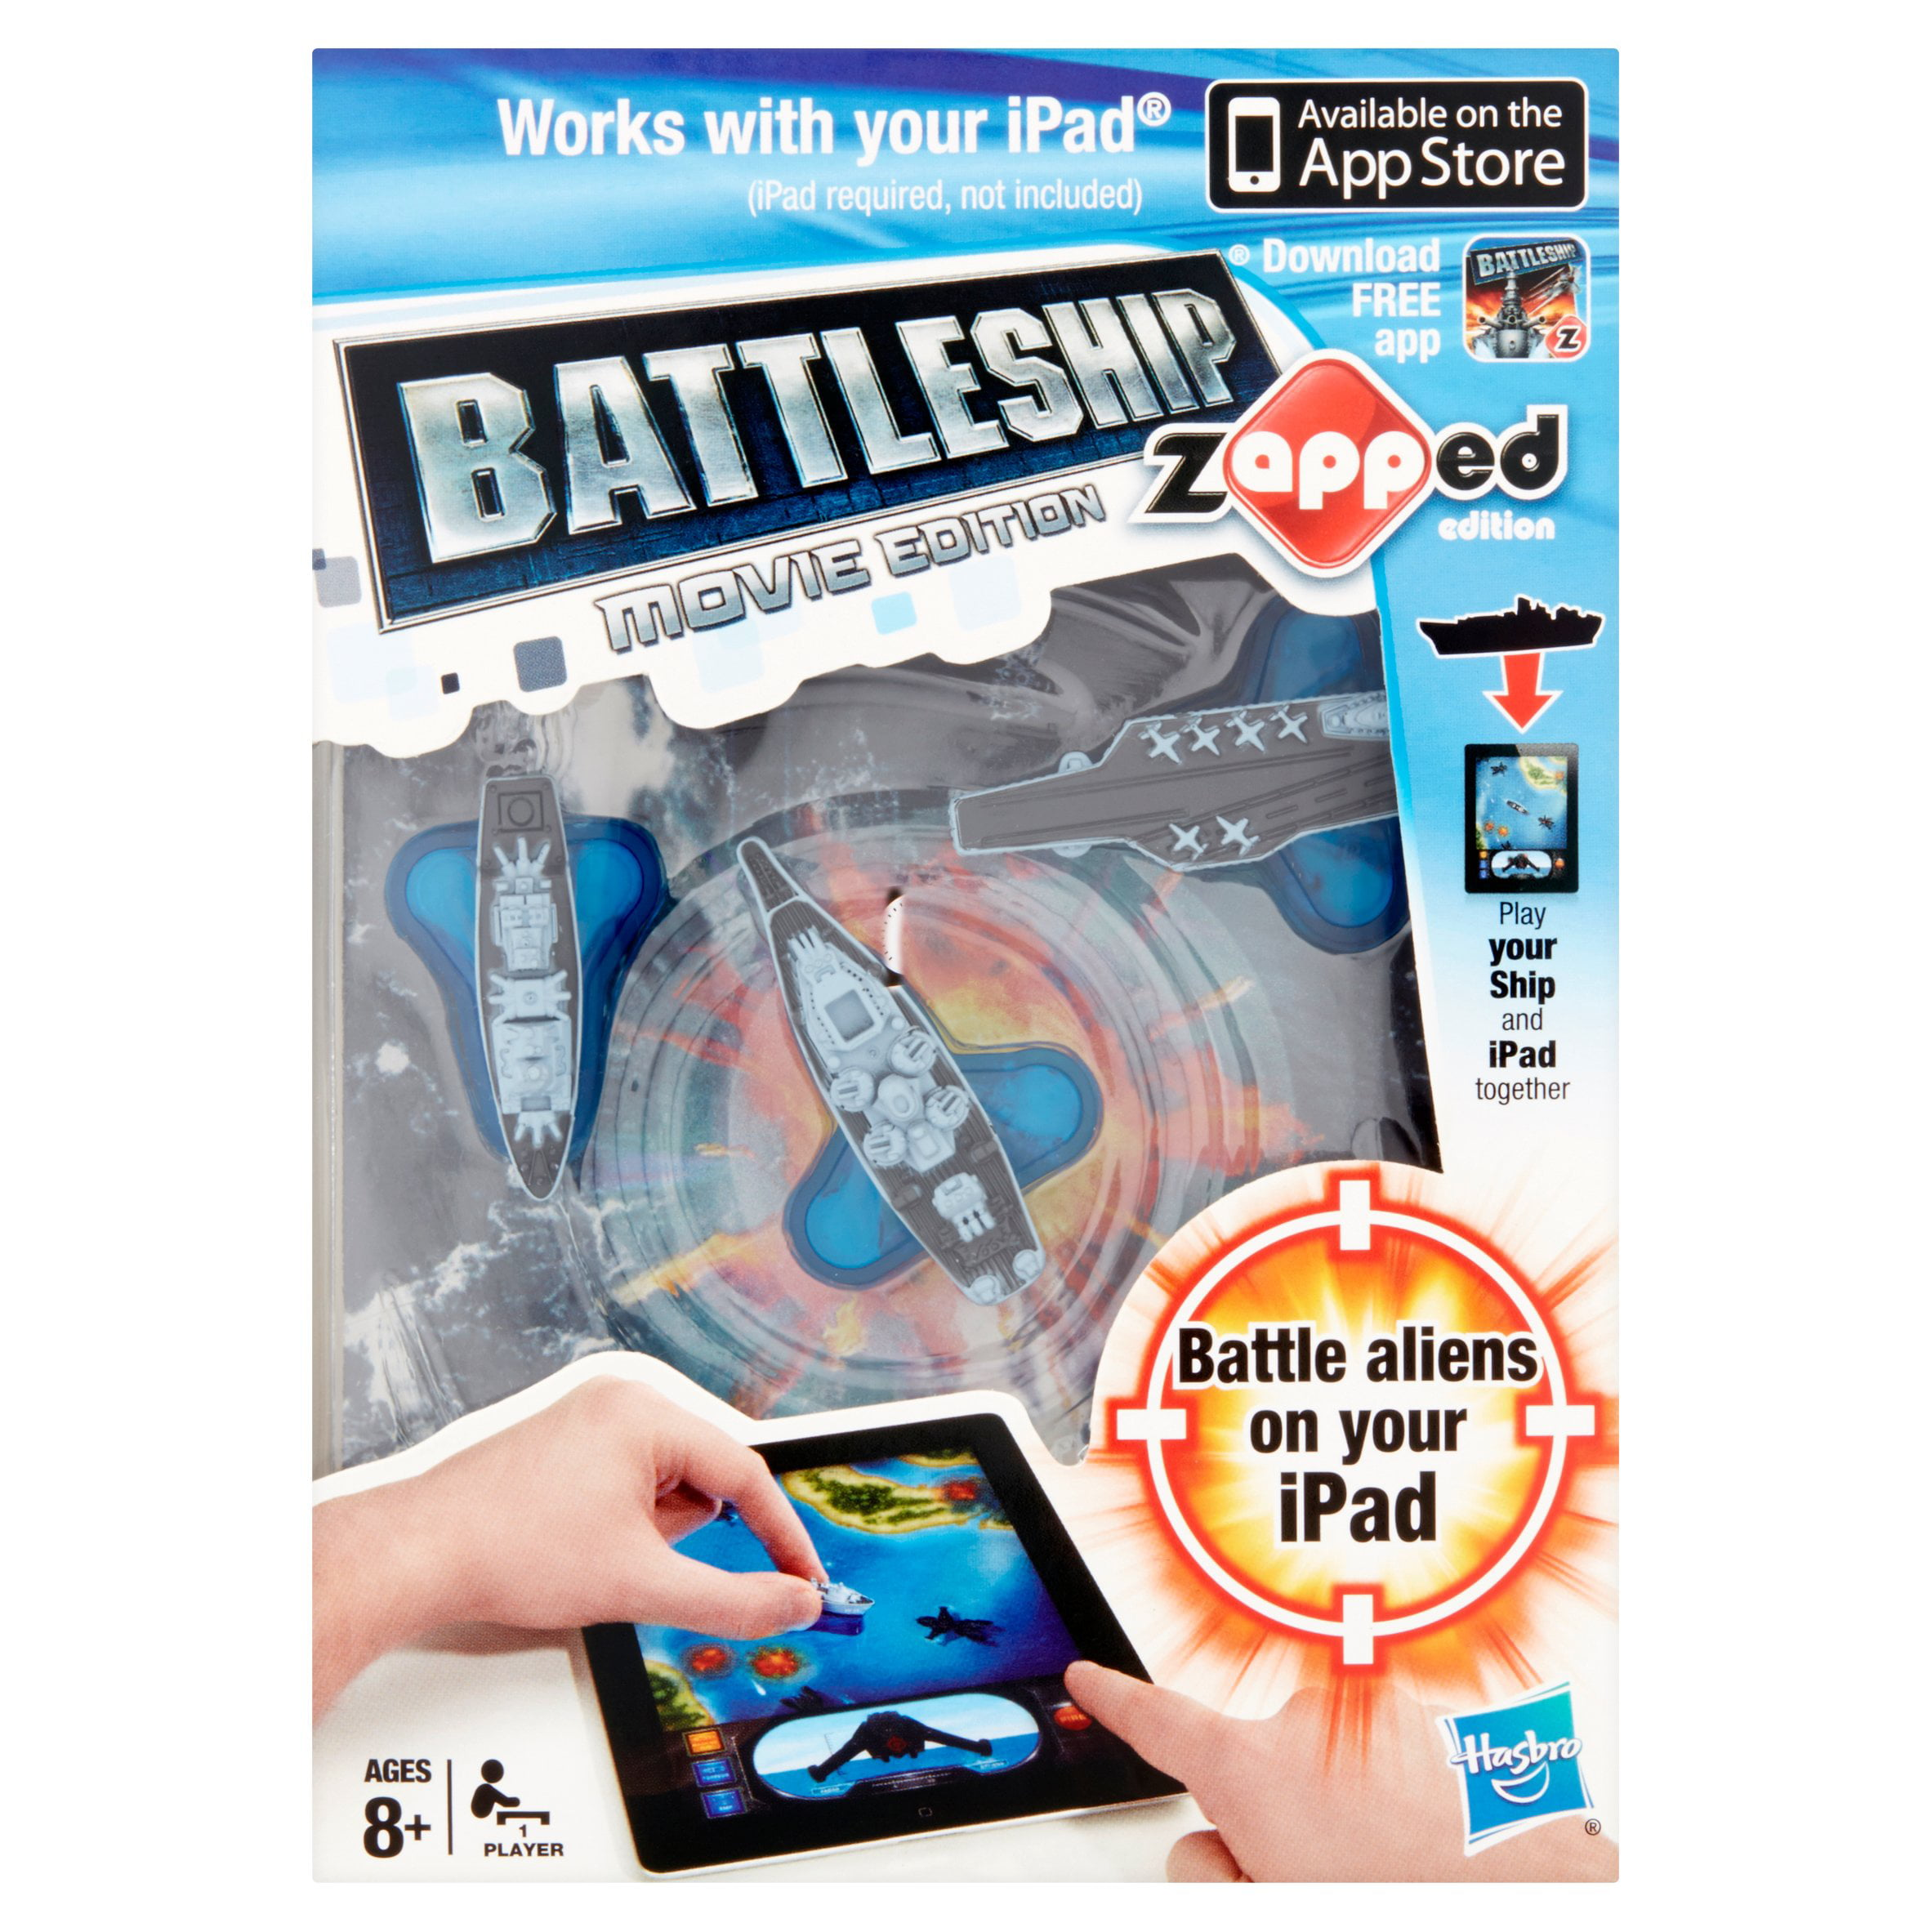 Hasbro Battleship Movie Edition Zapped Edition Battleship Toy 1 Player Ages 8+ by Hasbro Games, Consumer Affairs Dept.